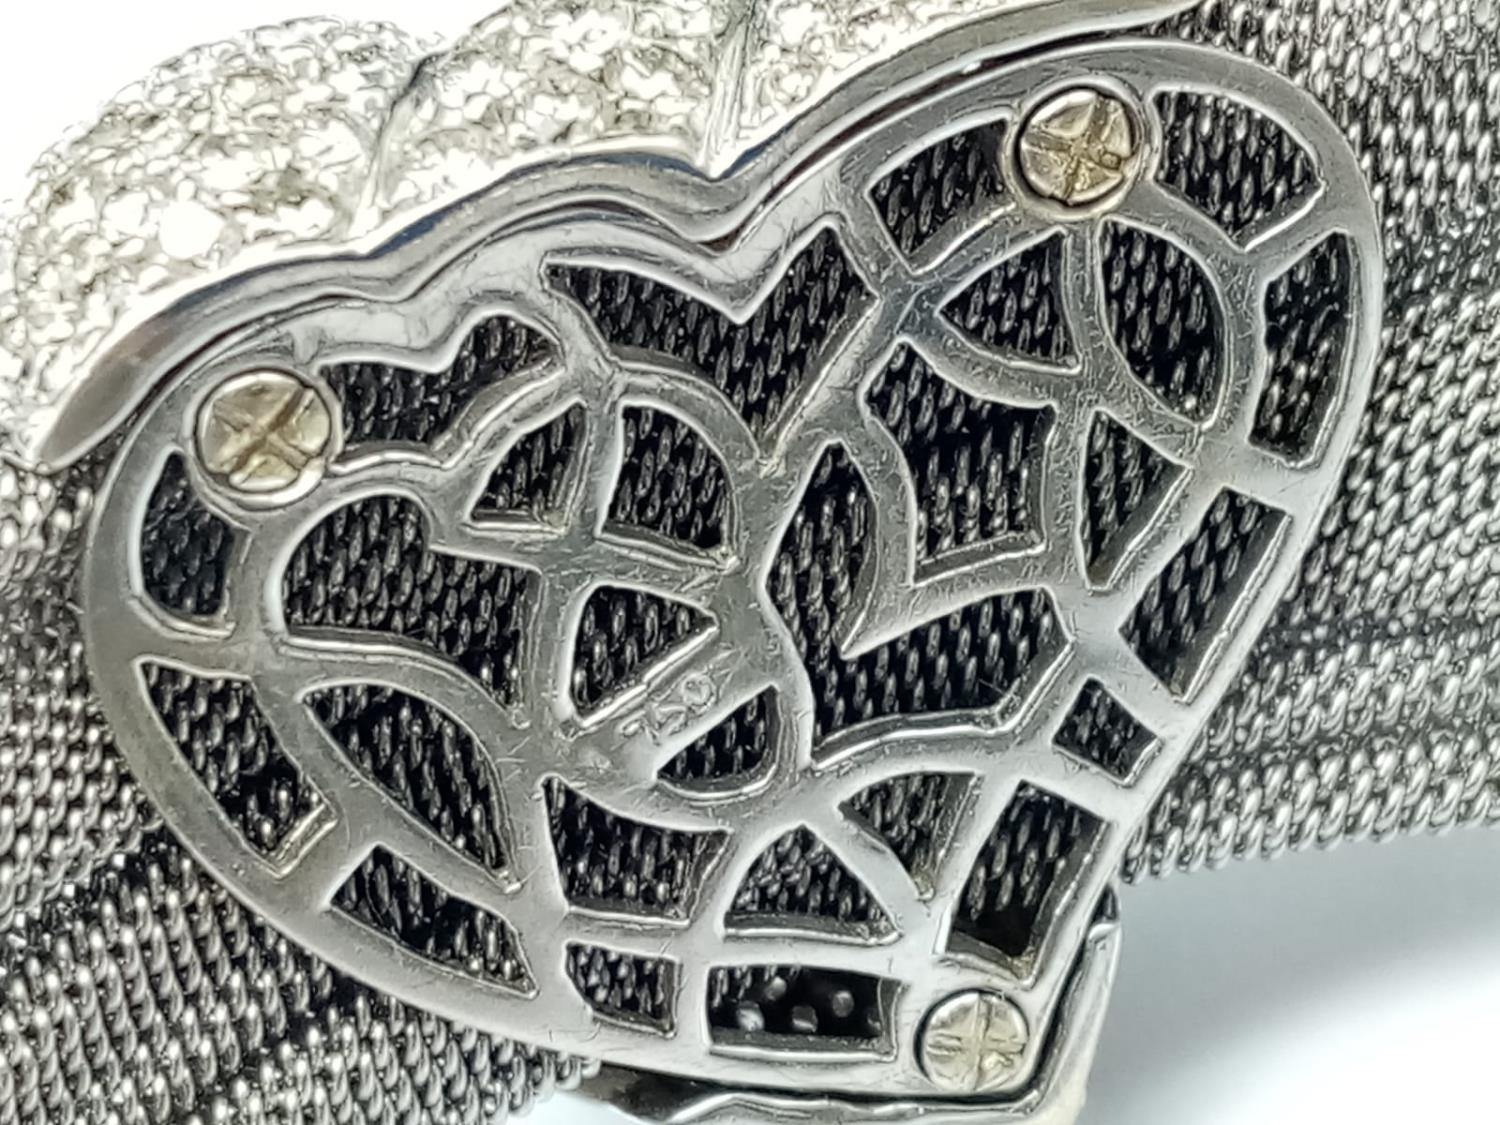 an 18k white gold bracelet with 10 diamonds and a diamond encrusted heart. 53.4gms 19cms - Image 10 of 10